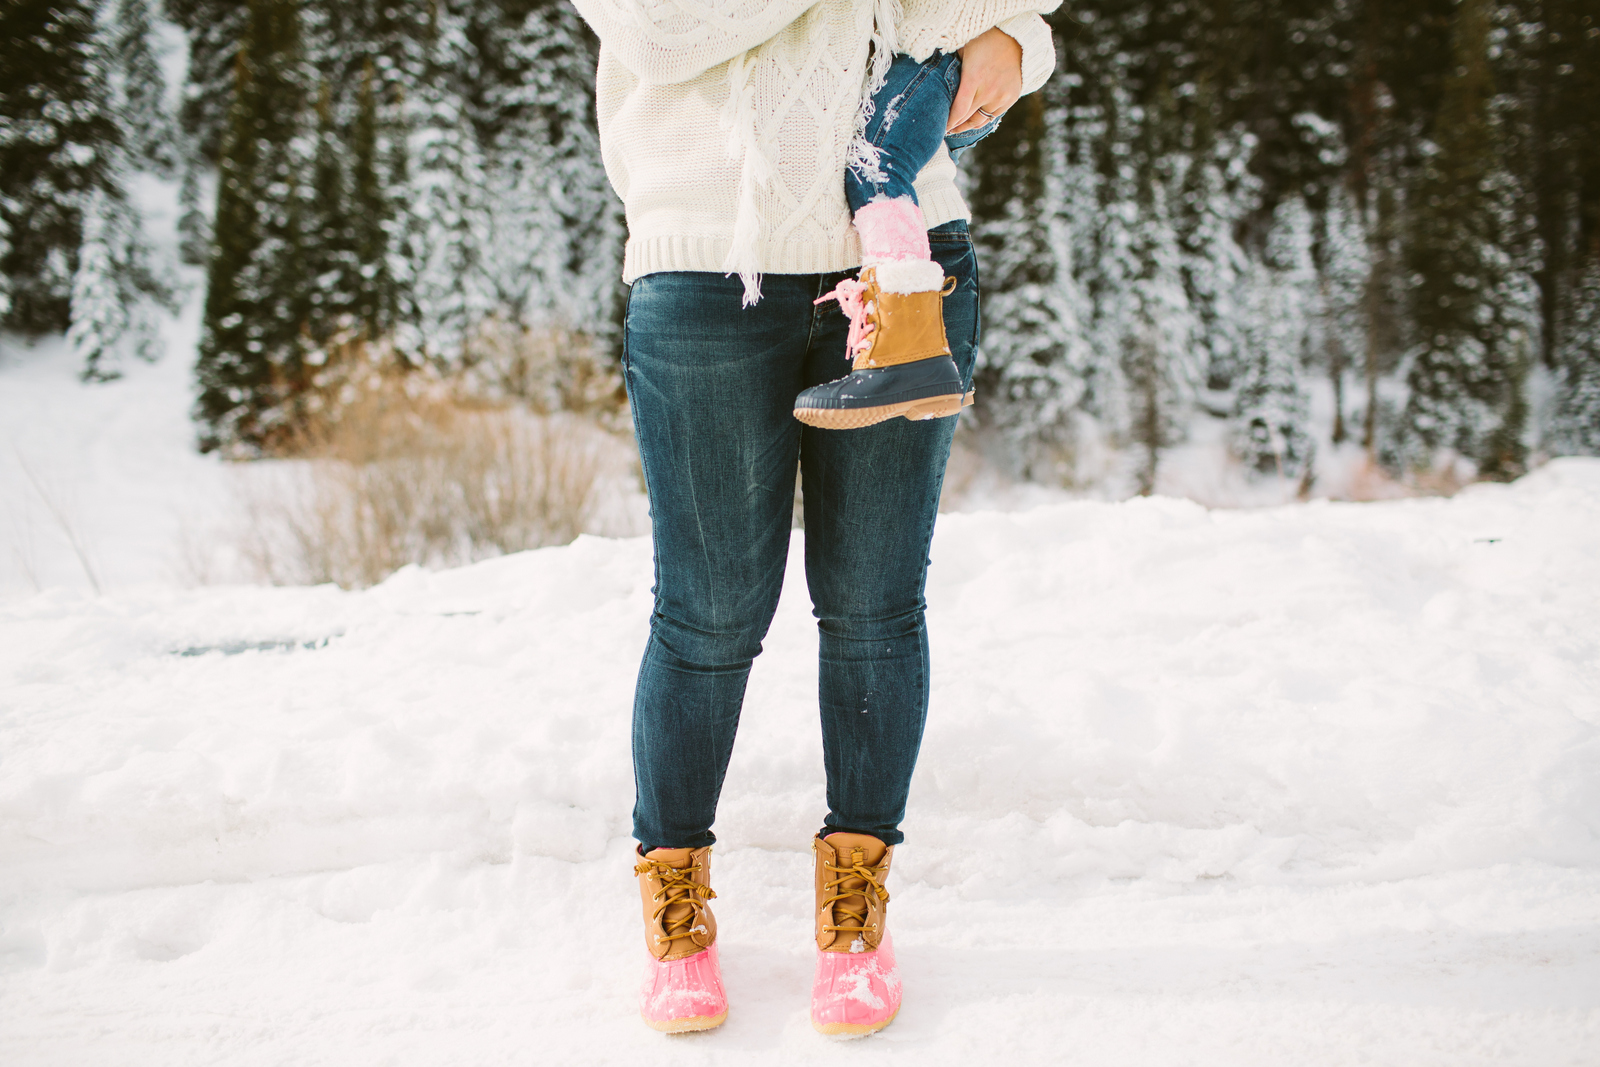 Stylish Snow Boots for the Family